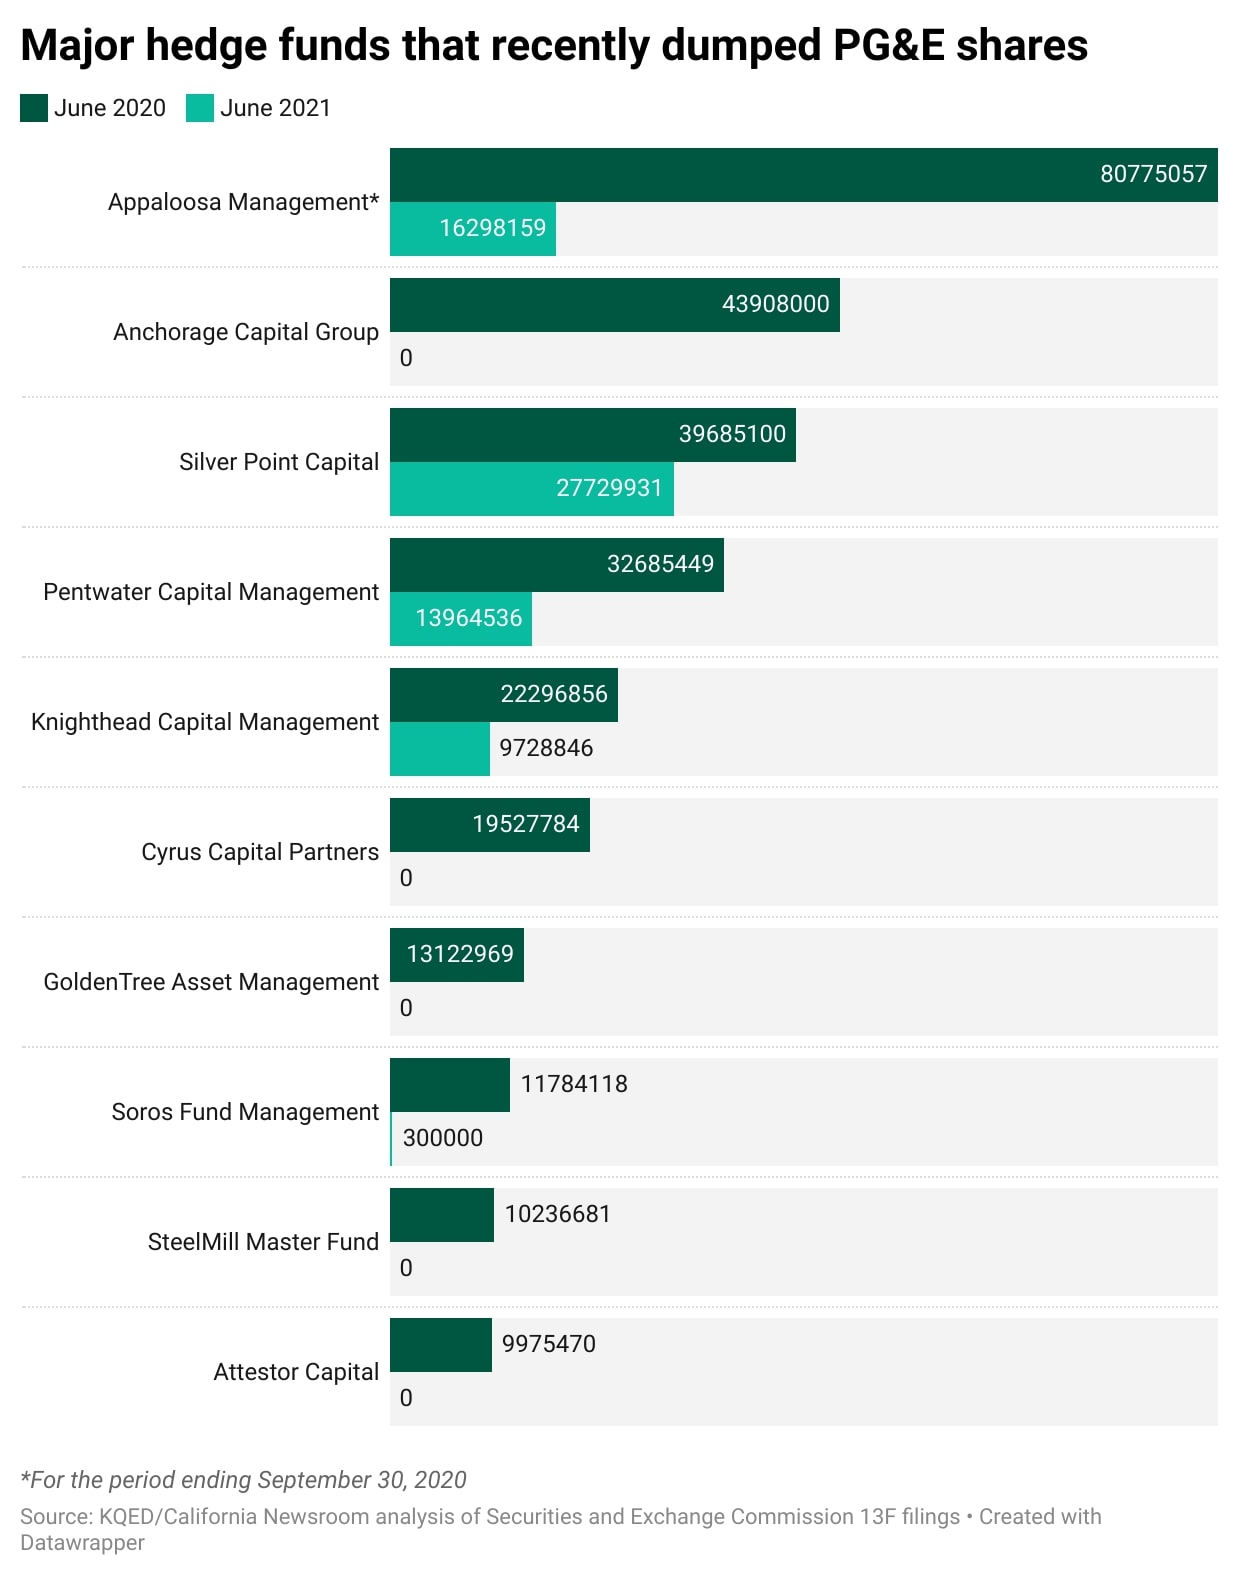 A graphic shows various hedge funds dumping PG&E shares, including Appaloosa Management, Anchorage Capital Group, and others.